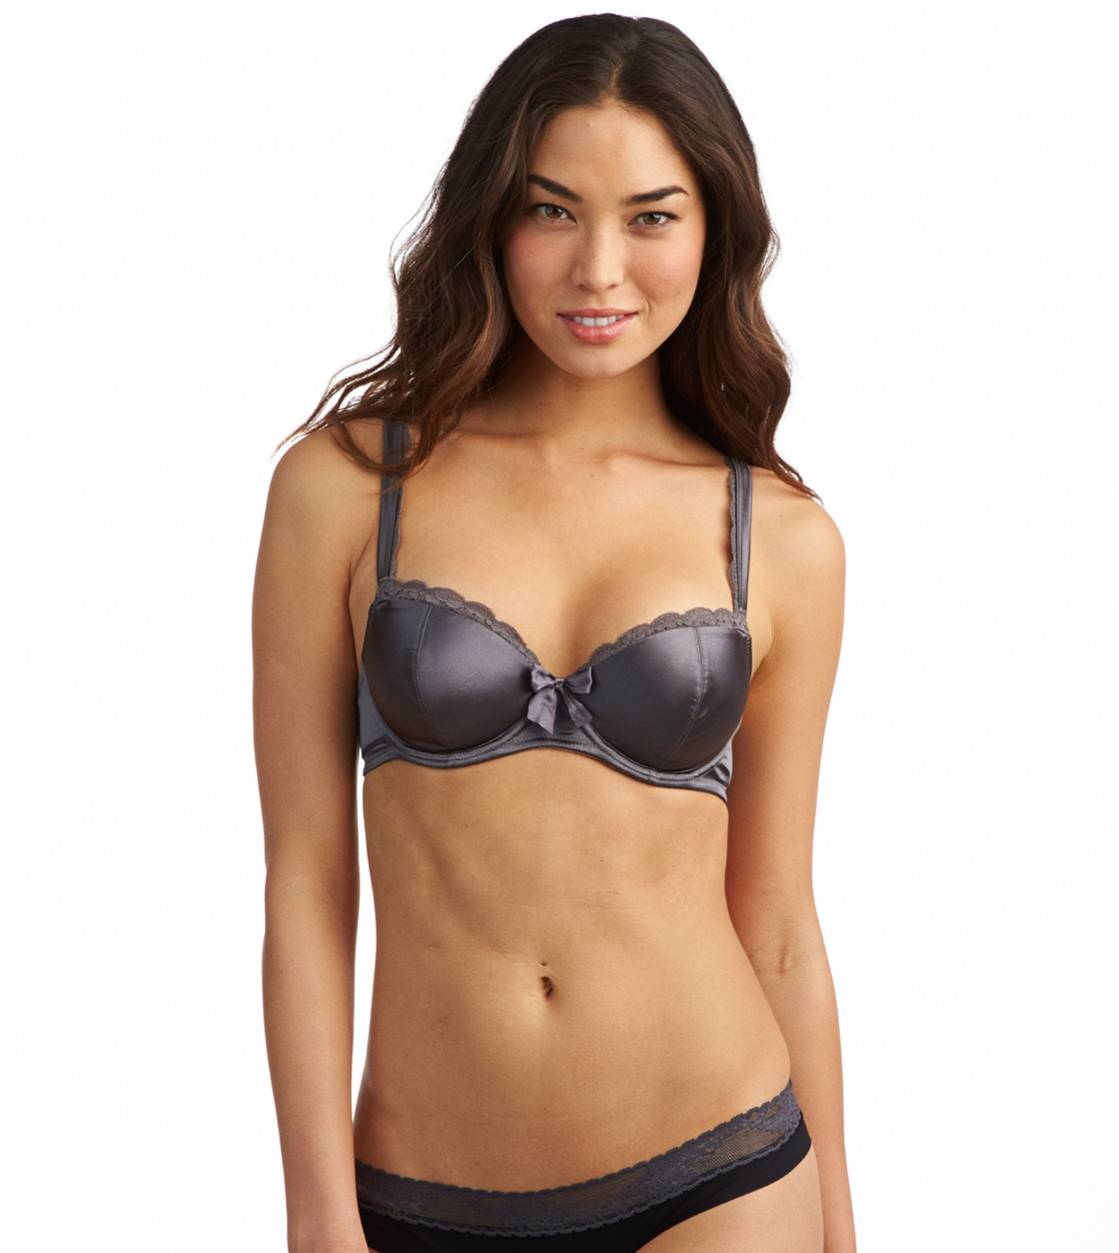 Pewter Holly Satin Pushup Bra